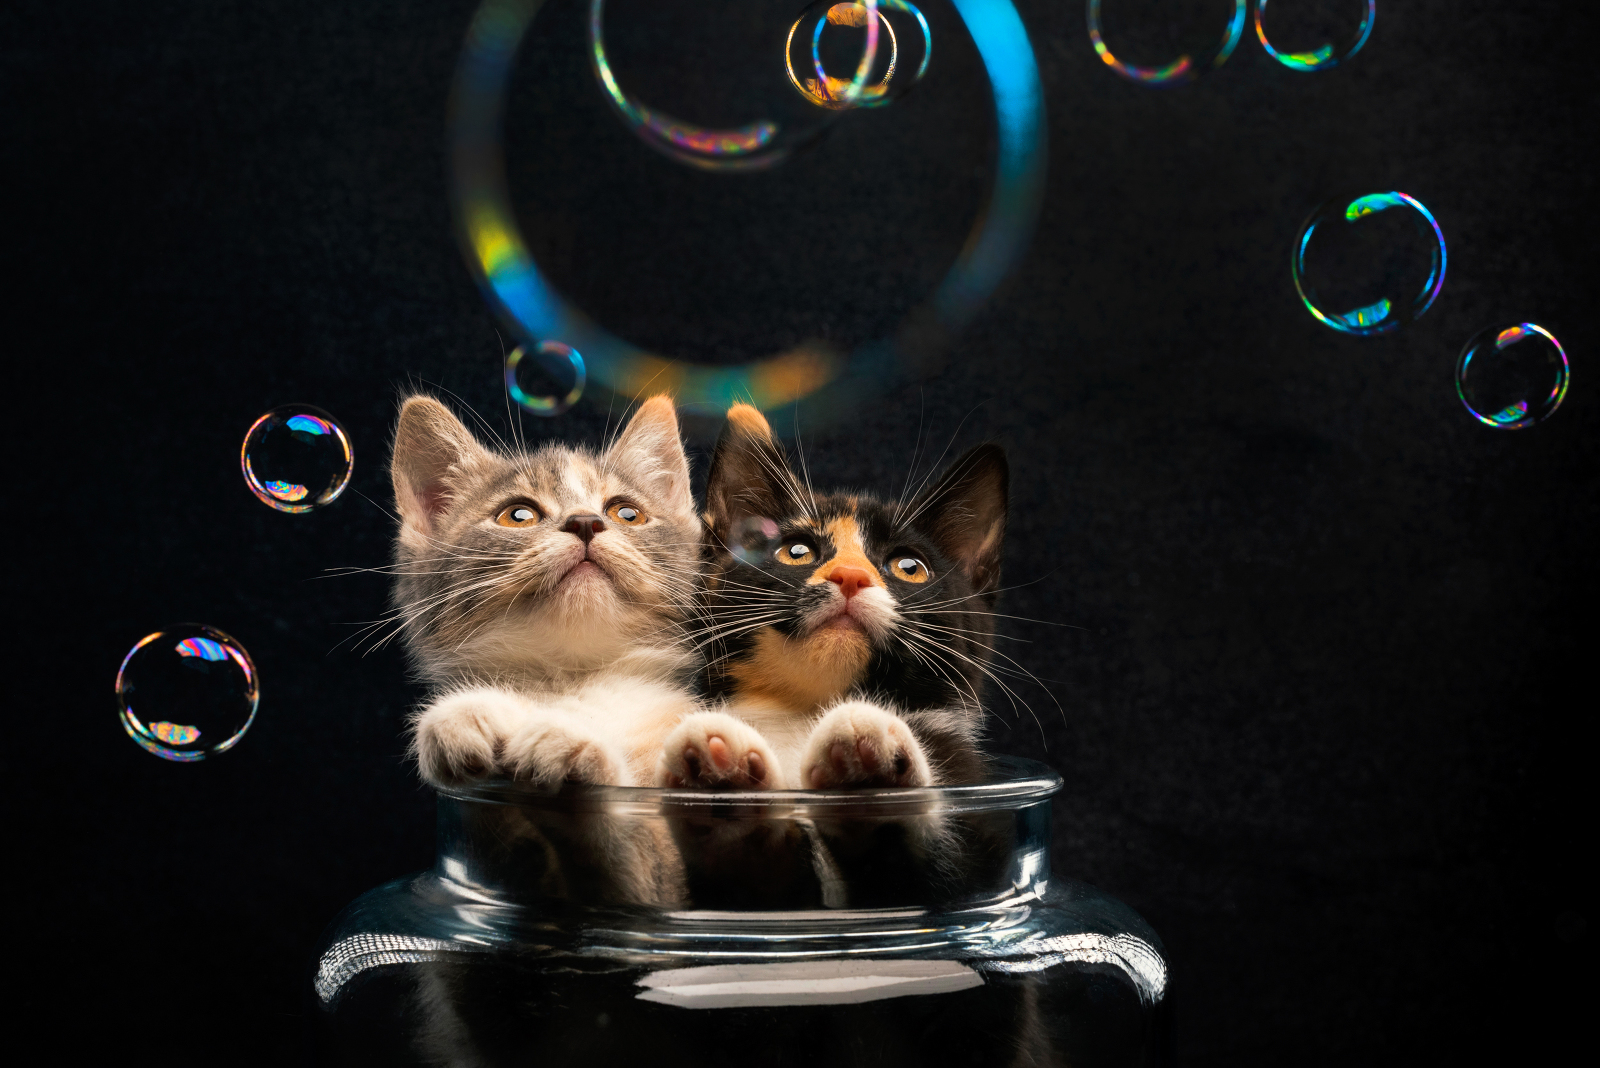 A pair of kittens attentively watch floating bubbles from a safe distance. Photographed by Candice Cusic